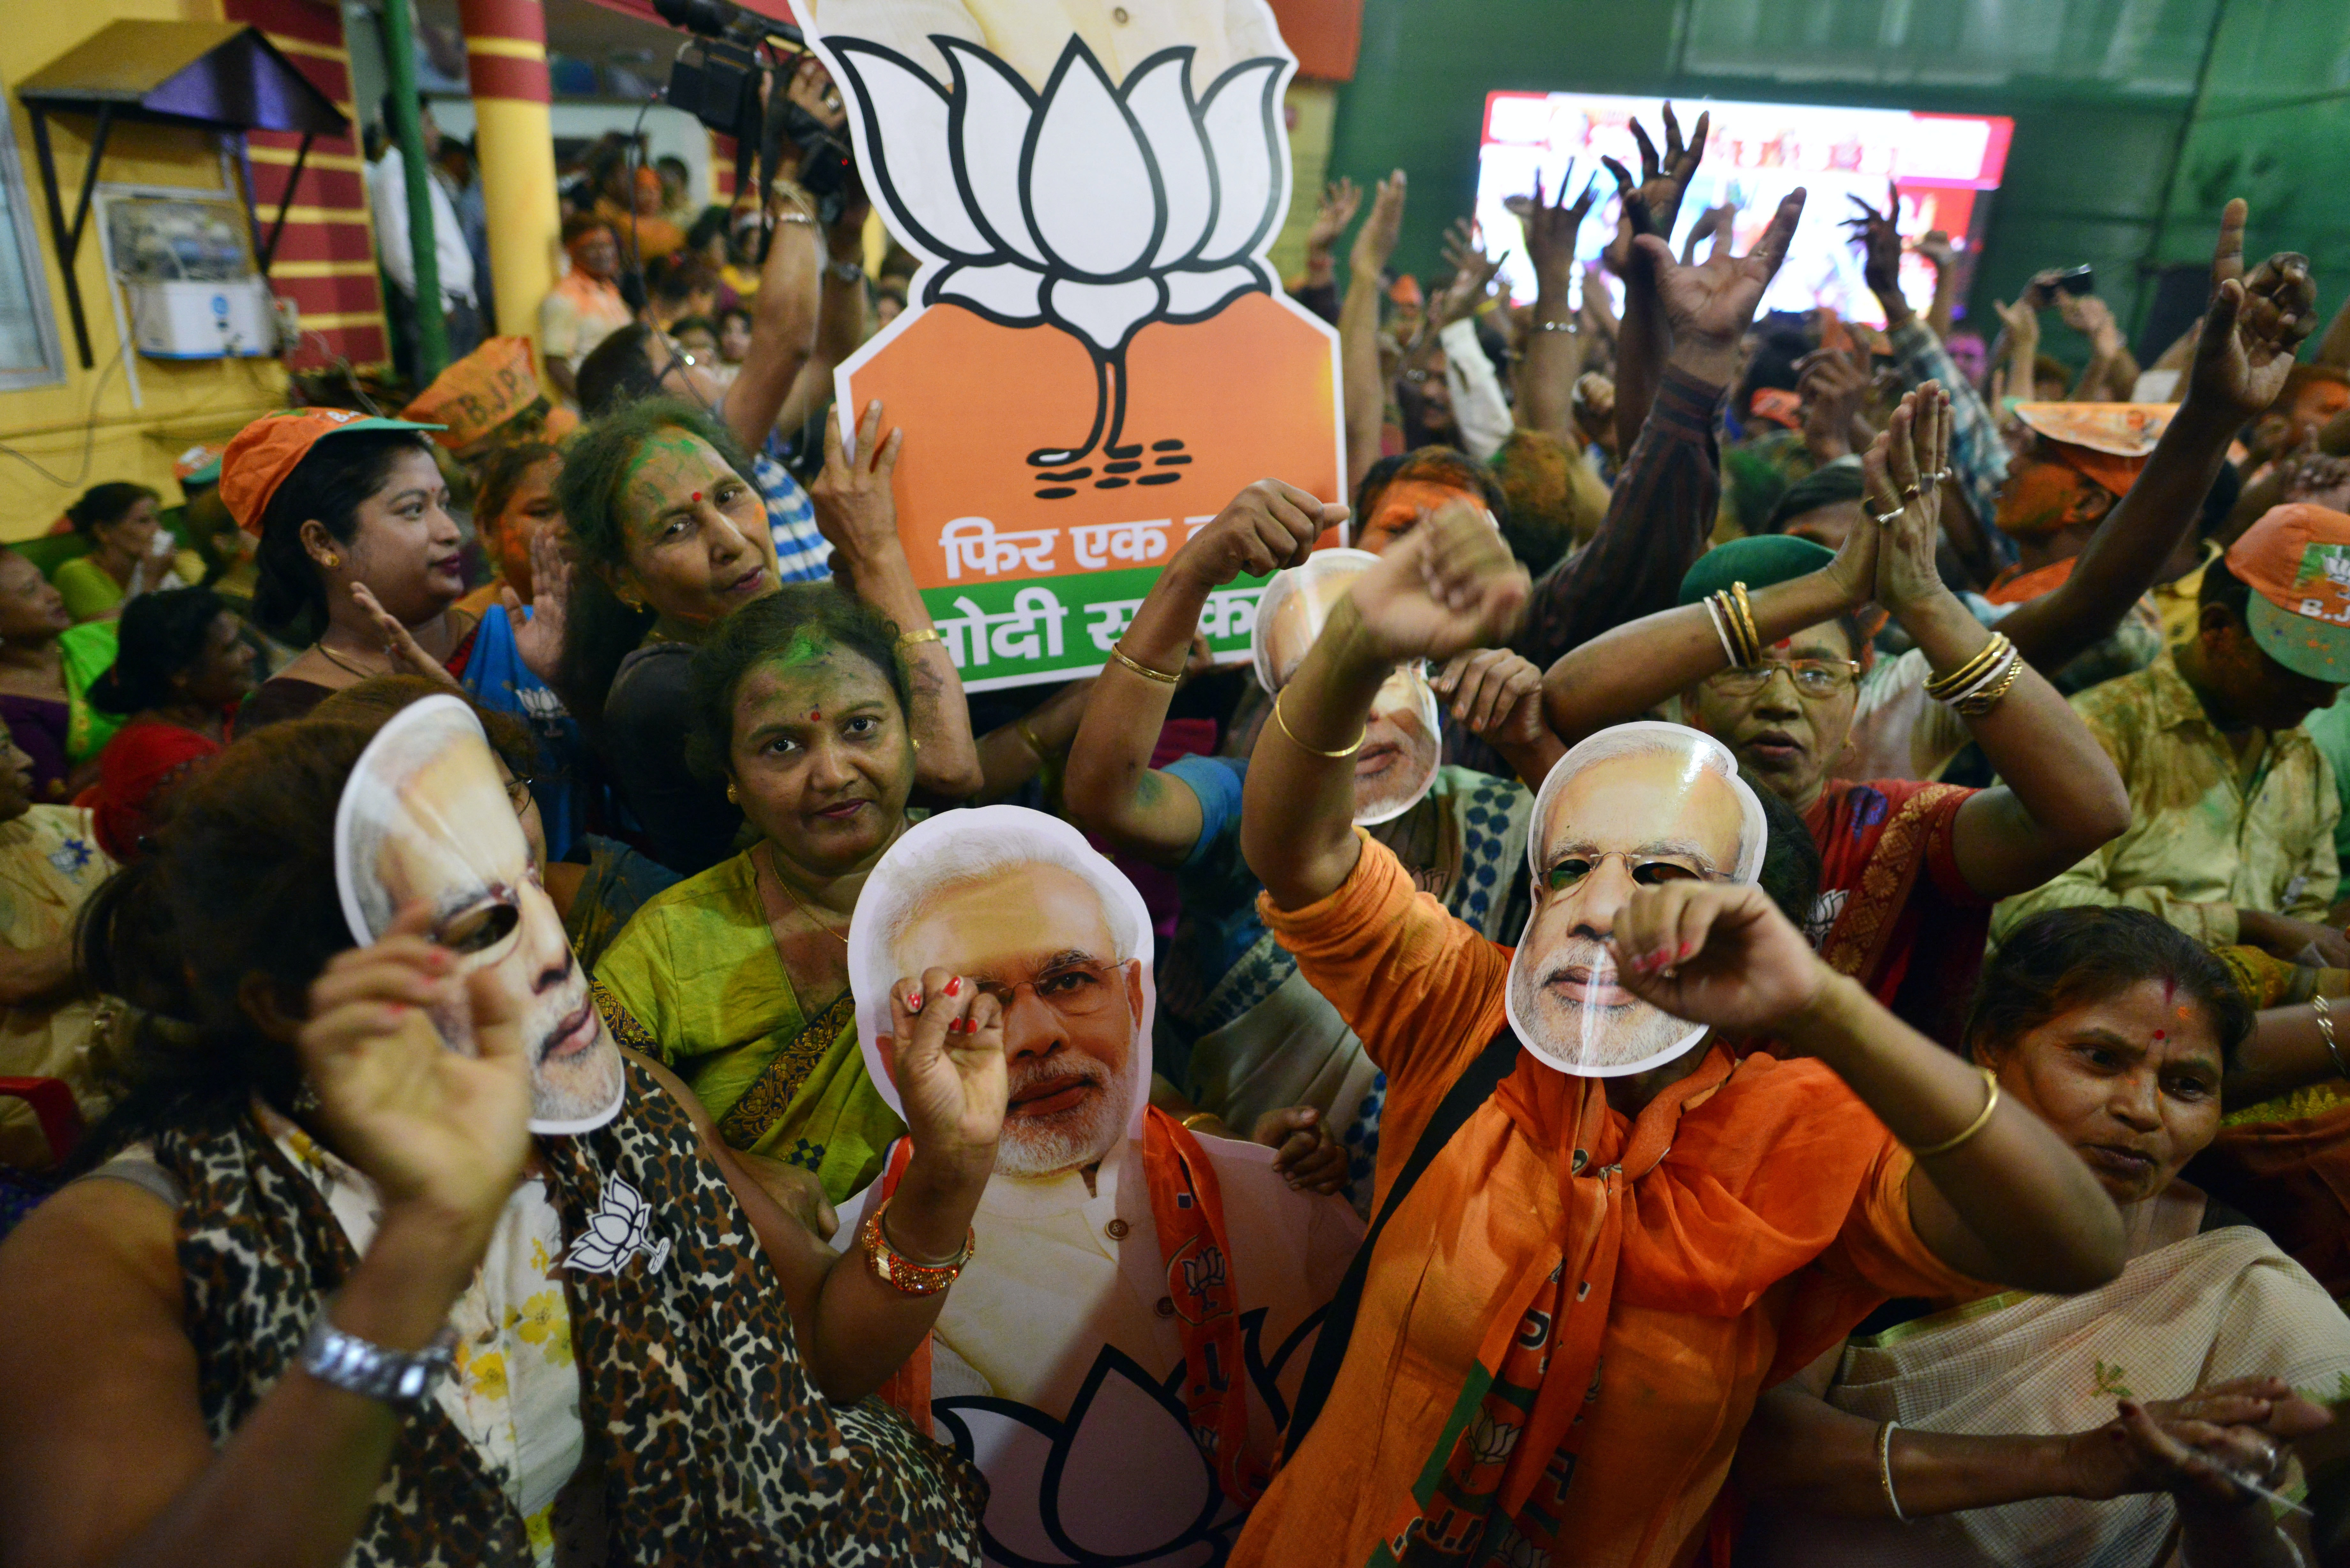 India election: how Narendra Modi won with an even bigger majority